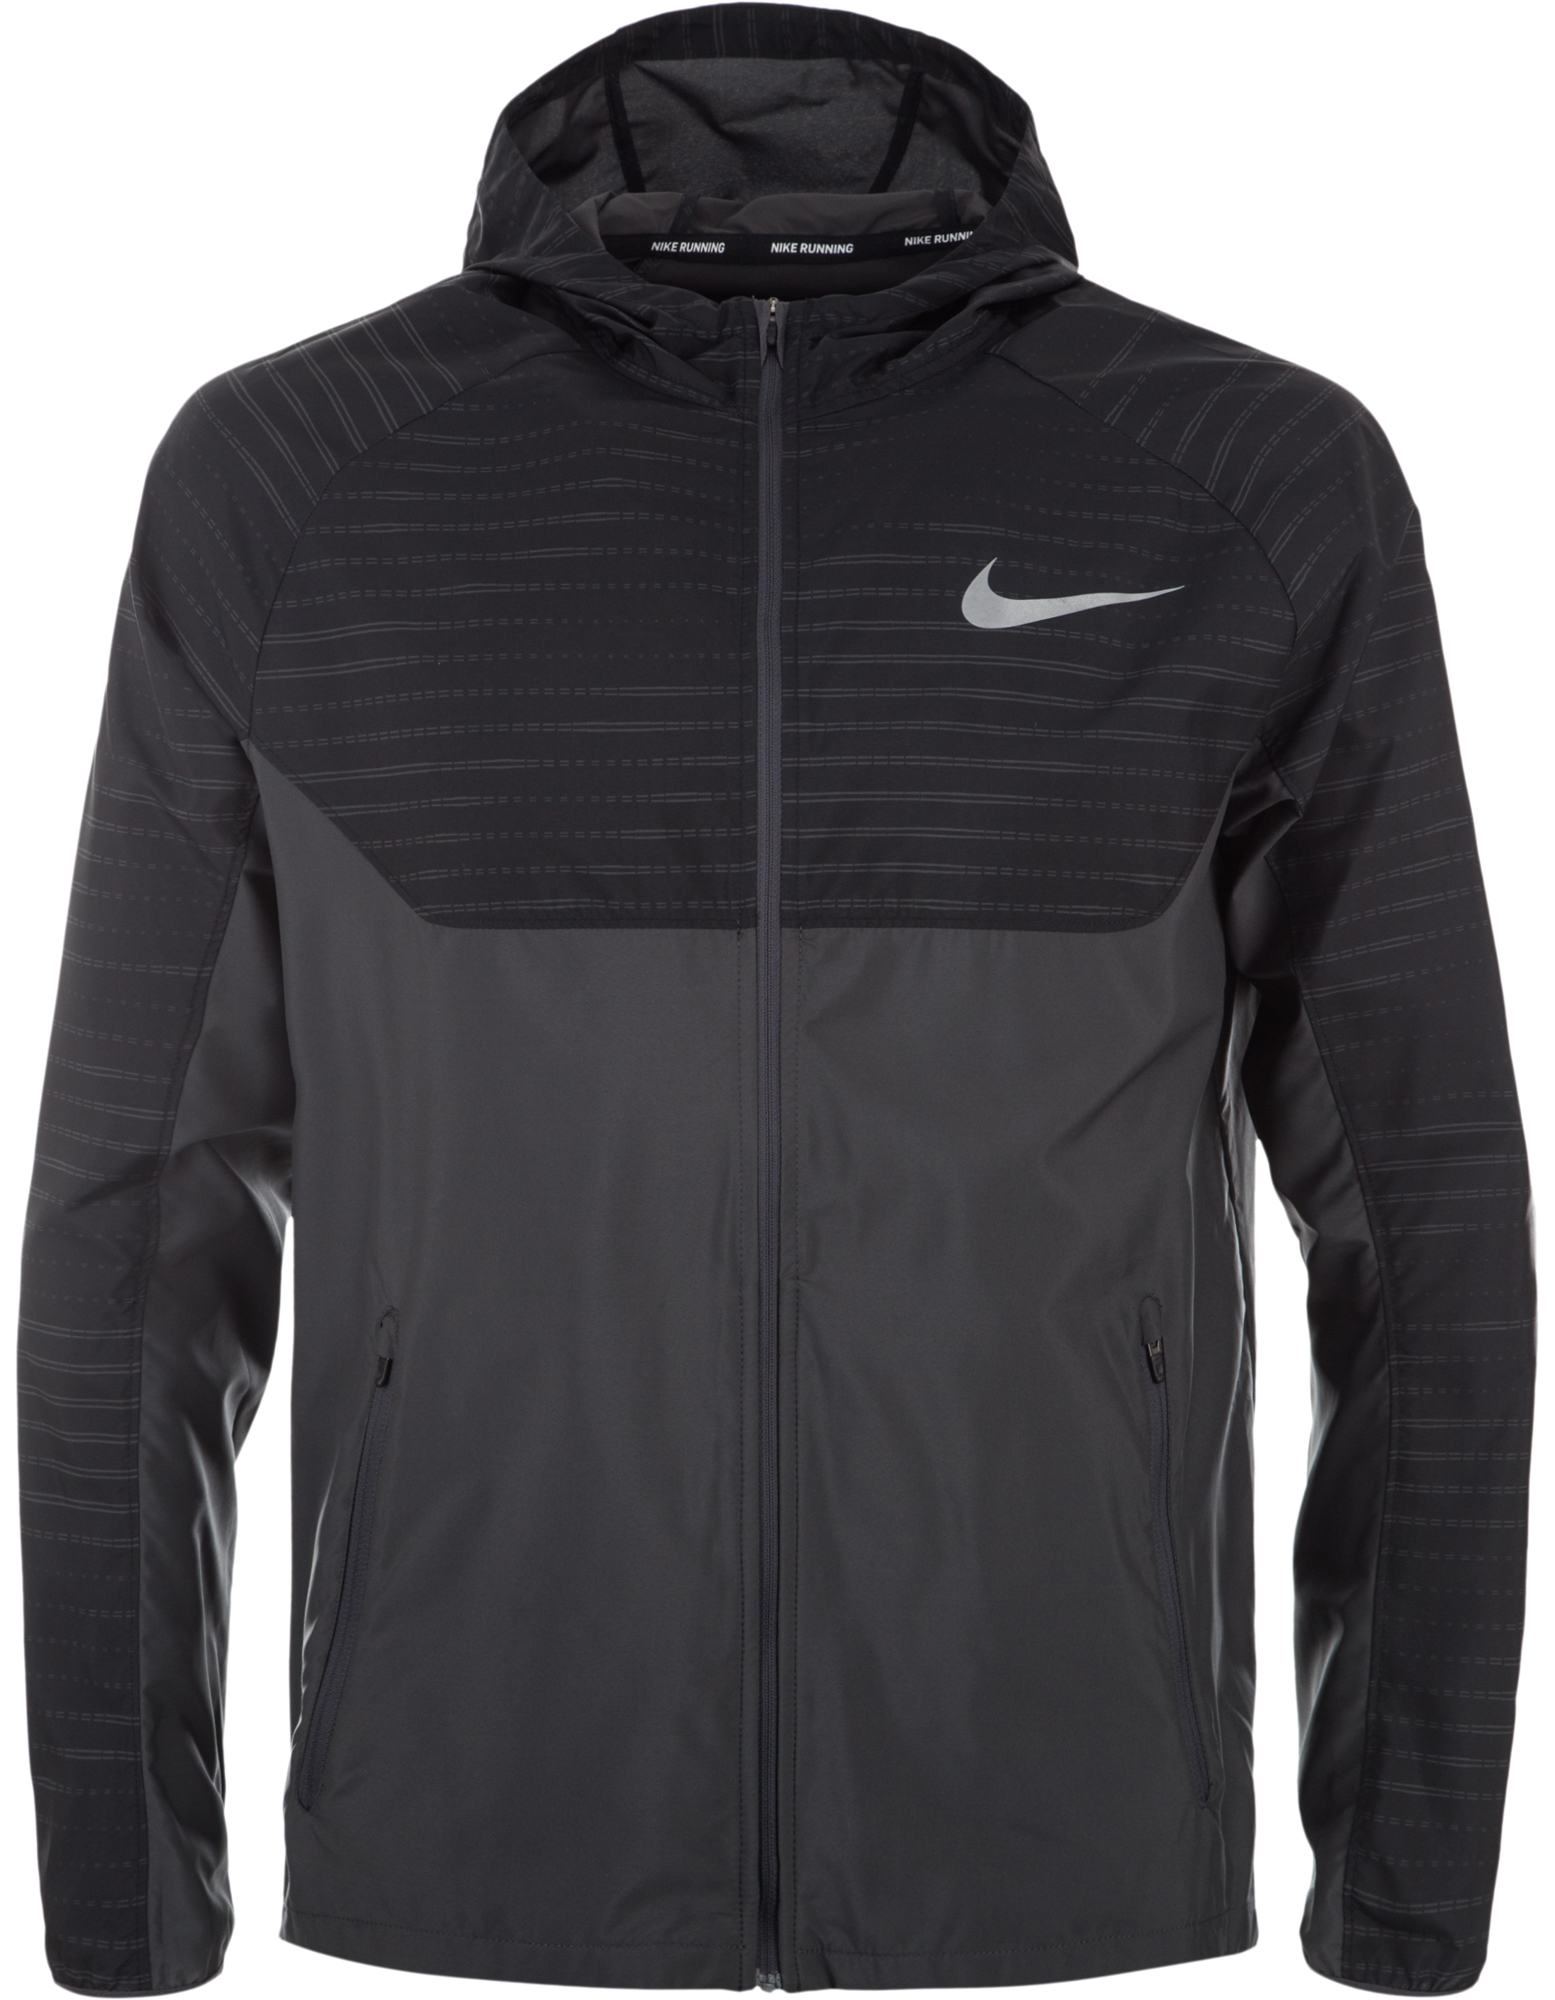 Nike Ветровка мужская Nike Essential Hooded nike ni464ewpkt05